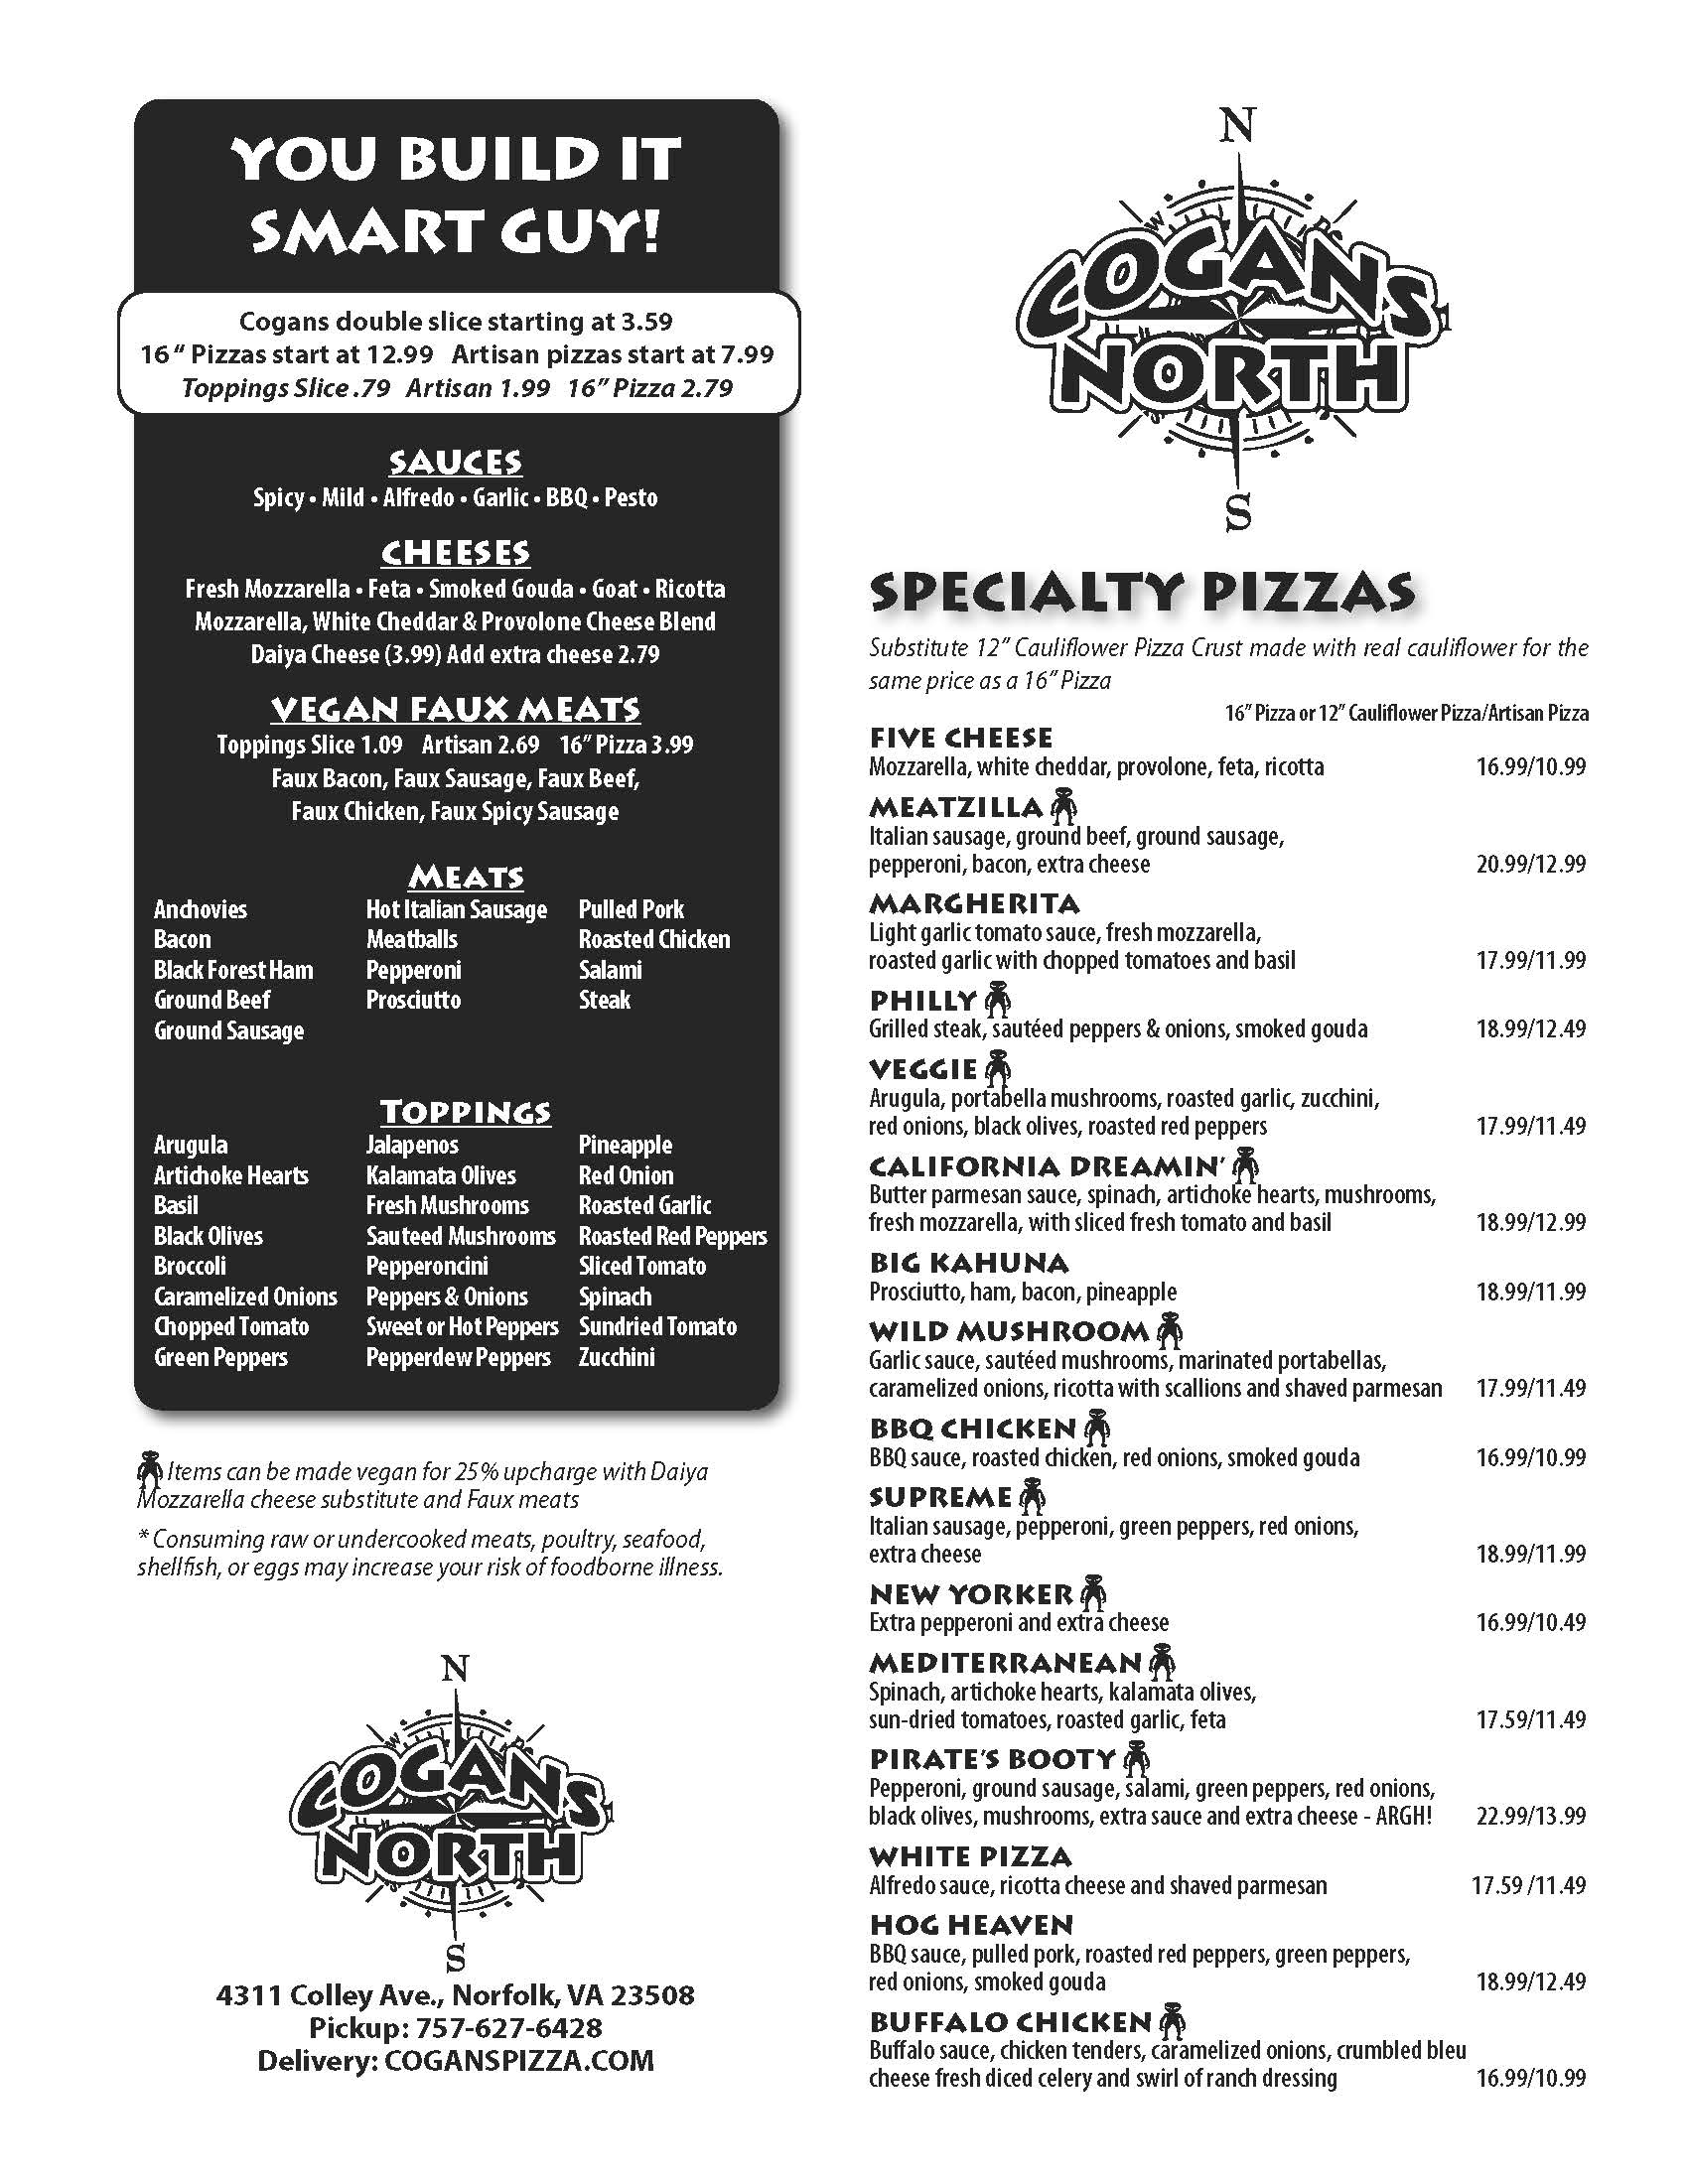 Cogans Pizza North Menu